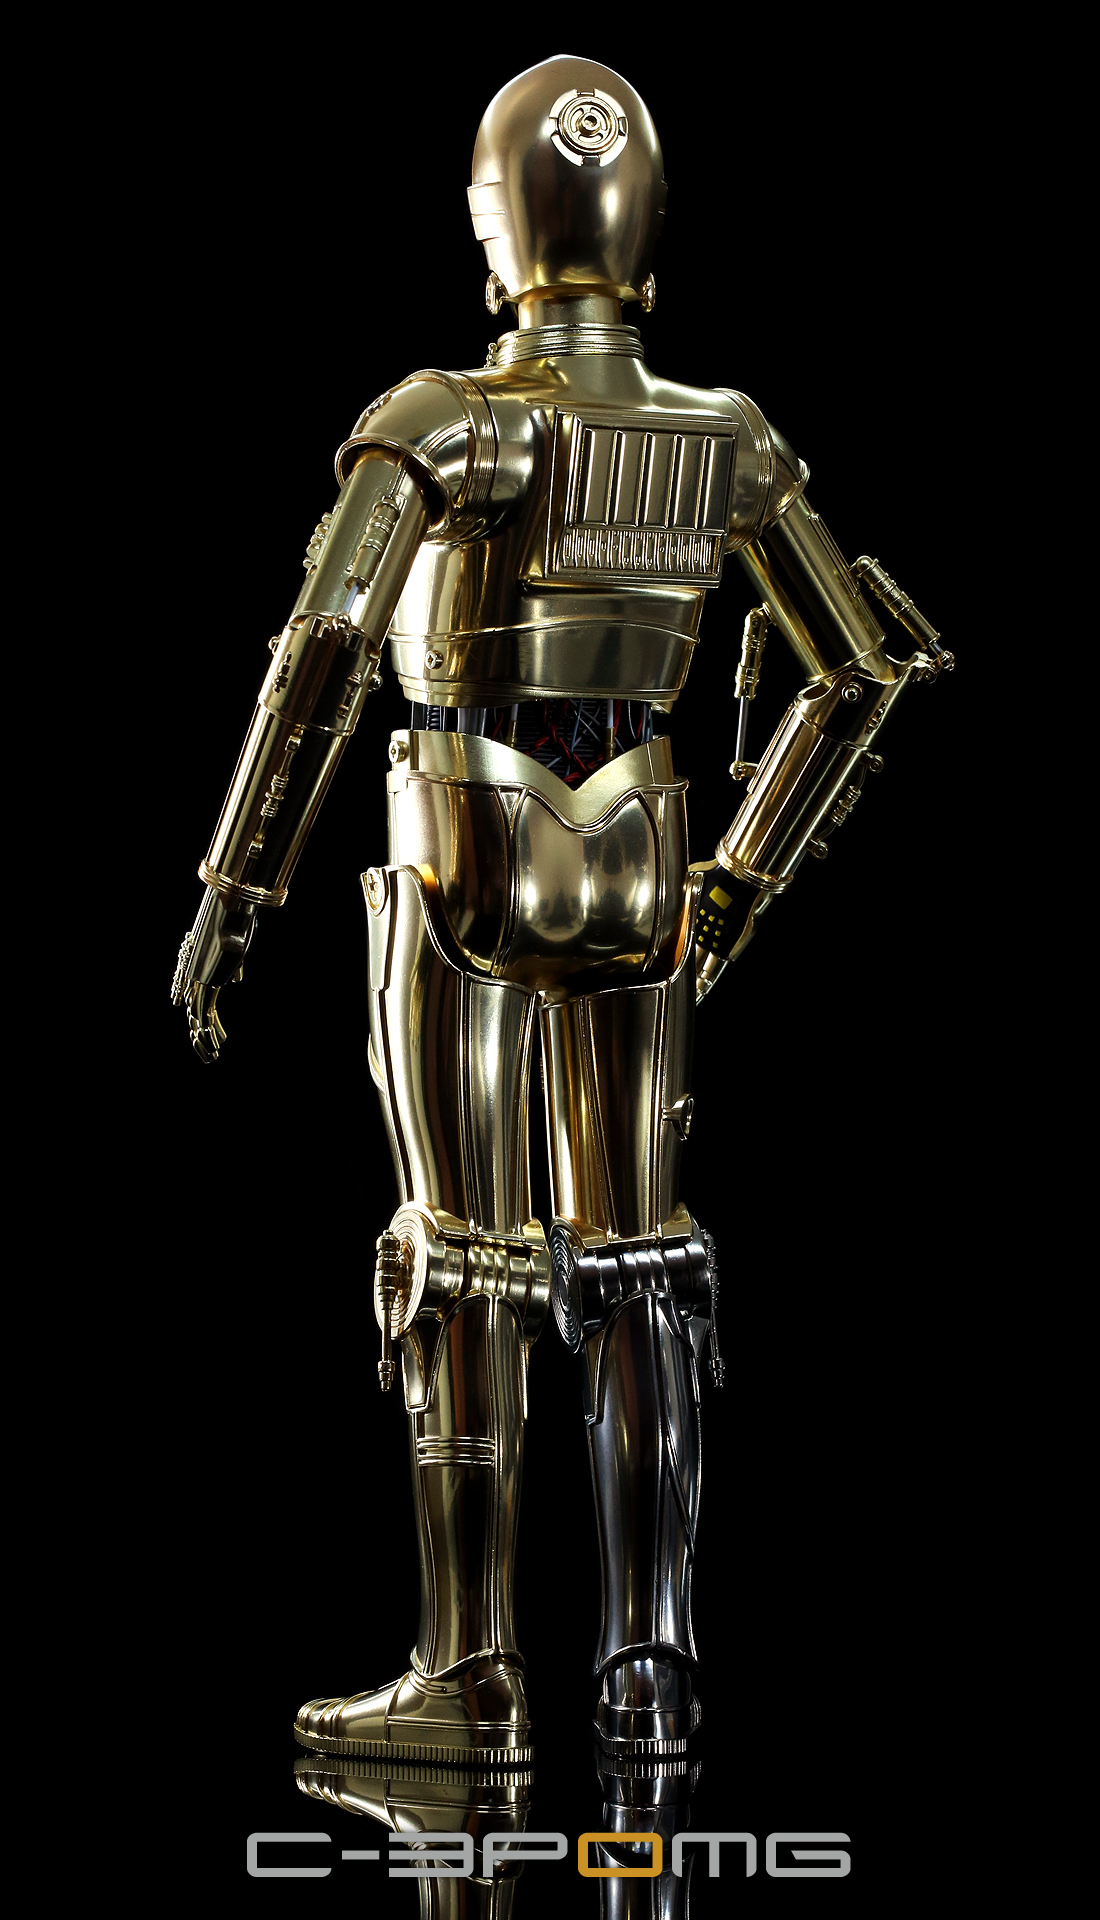 [Bandai] Star Wars: C-3PO - Perfect Model 1/6 scale - LANÇADO!!! - Página 2 C-3PO1202_zps2095aaad